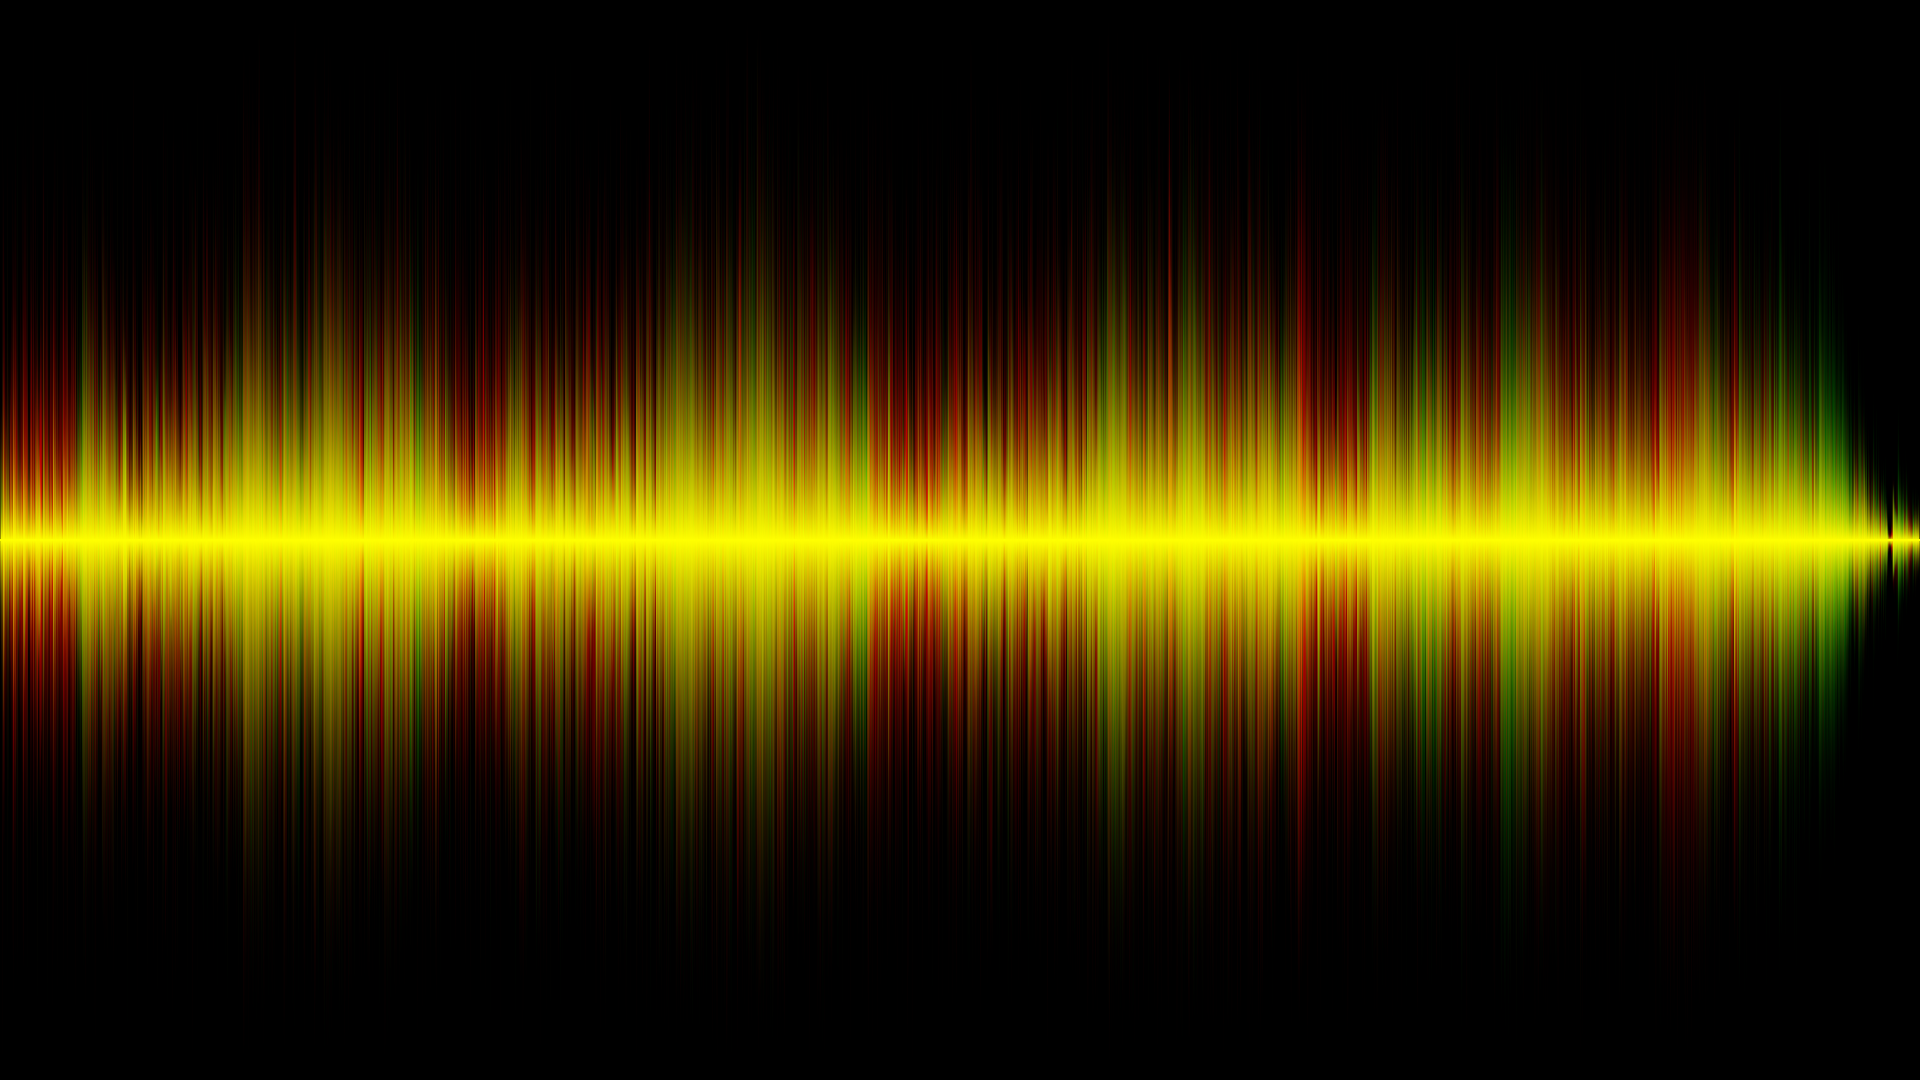 HQ Sound Wallpapers | File 643.96Kb